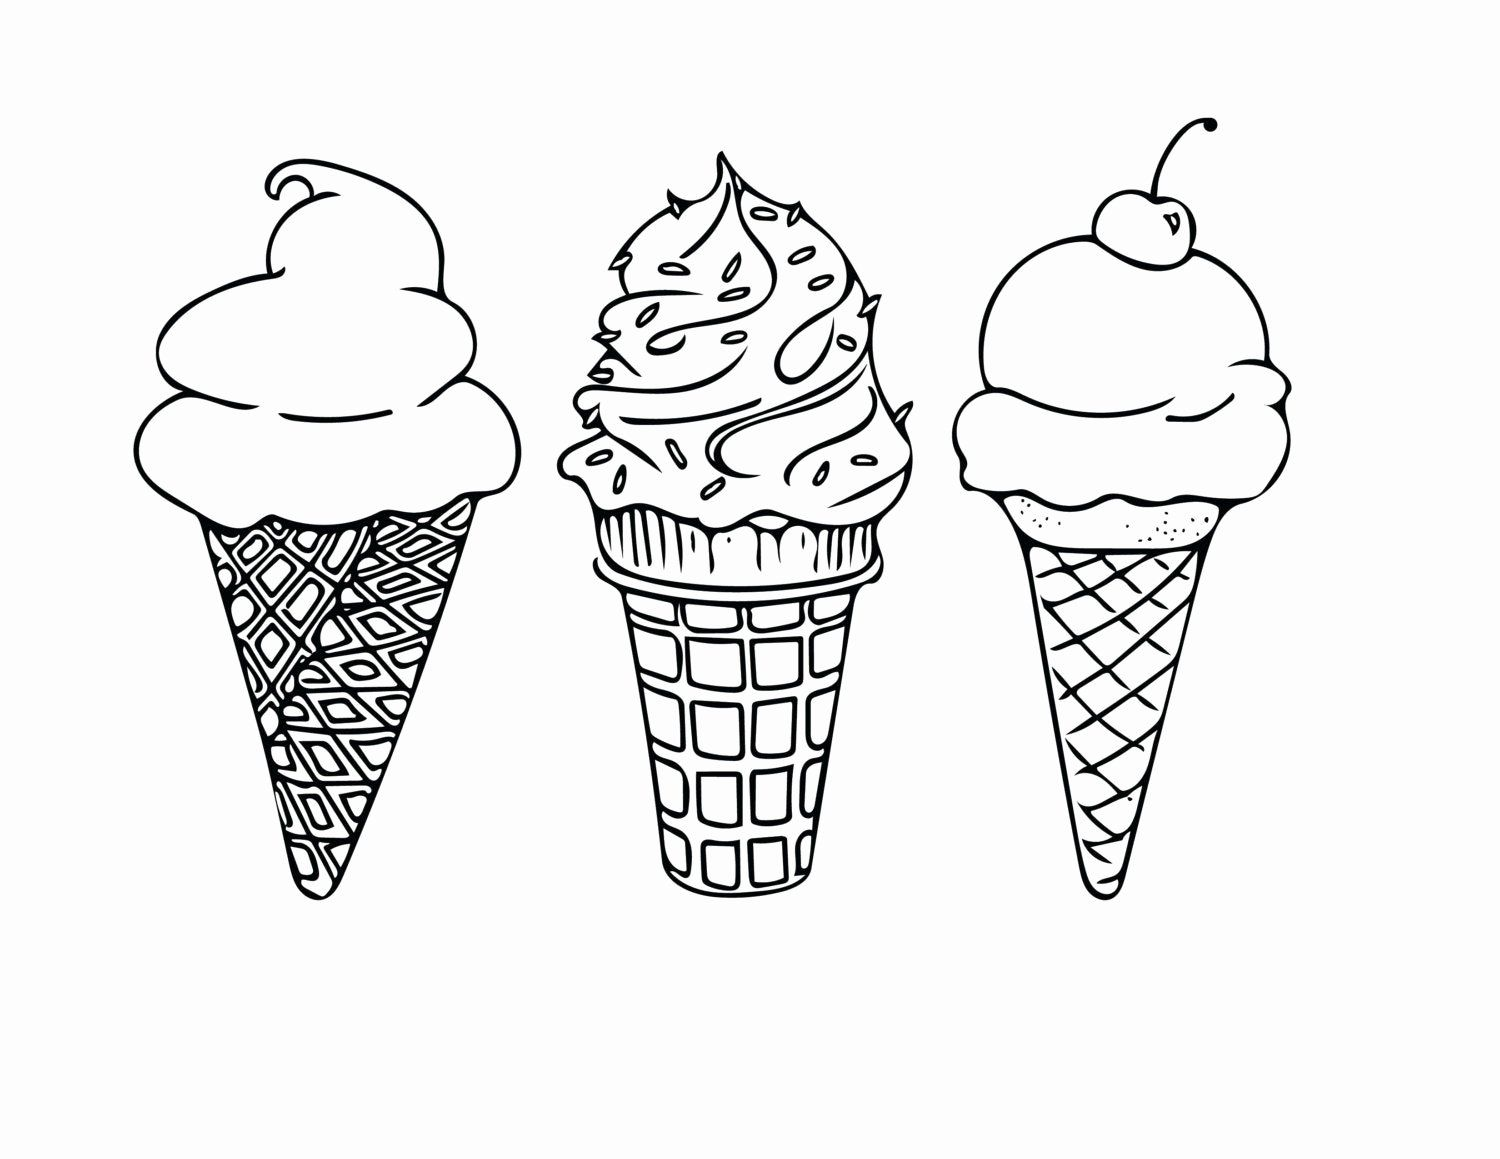 Coloring Page Ice Cream Unique Printable Coloring Sheet Instant Download Ice Cream Cones Ice Cream Coloring Pages Ice Cream Tattoo Free Coloring Pages